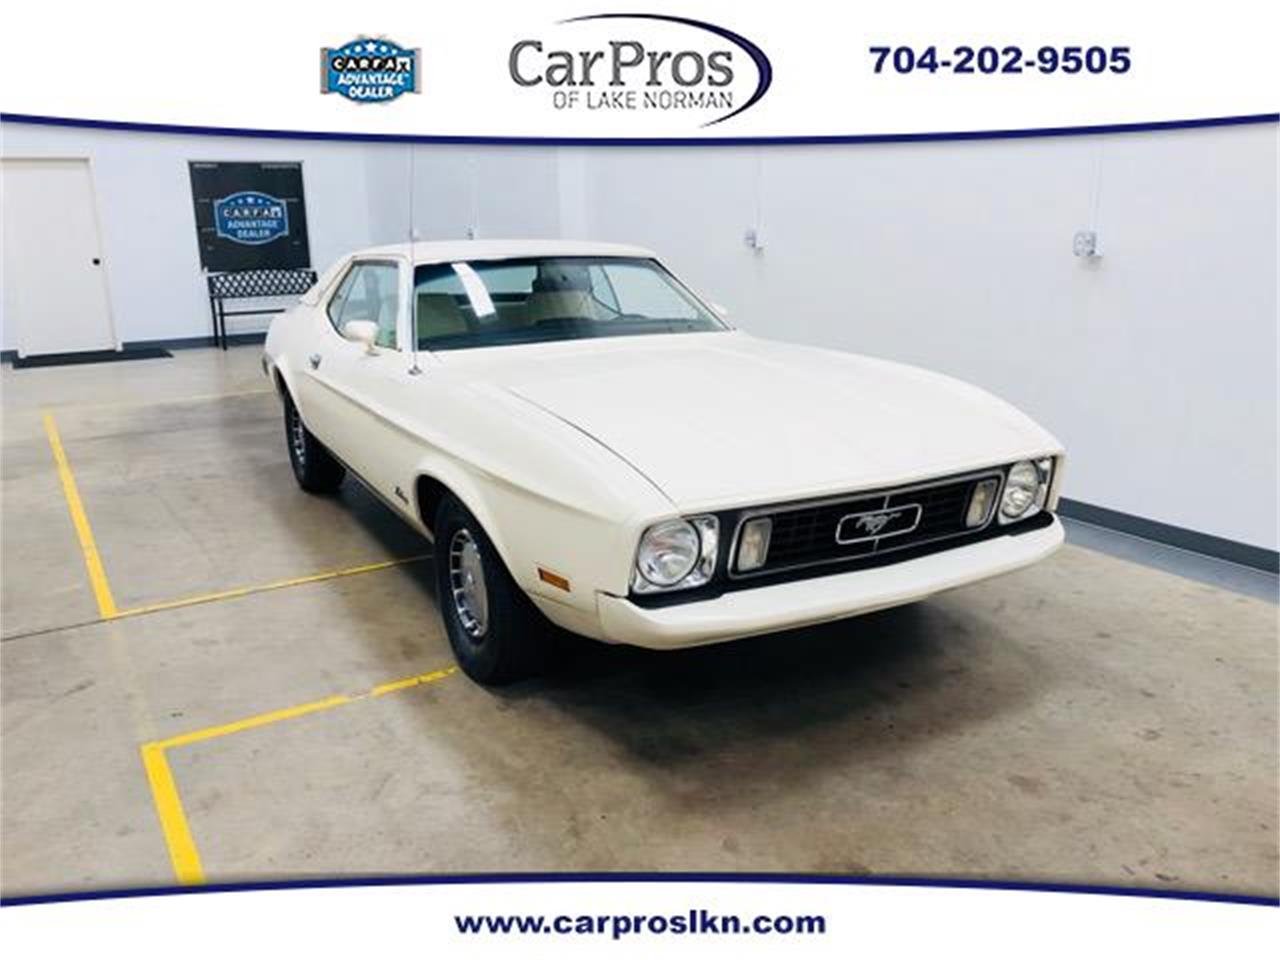 For Sale: 1973 Ford Mustang in Mooresville, North Carolina